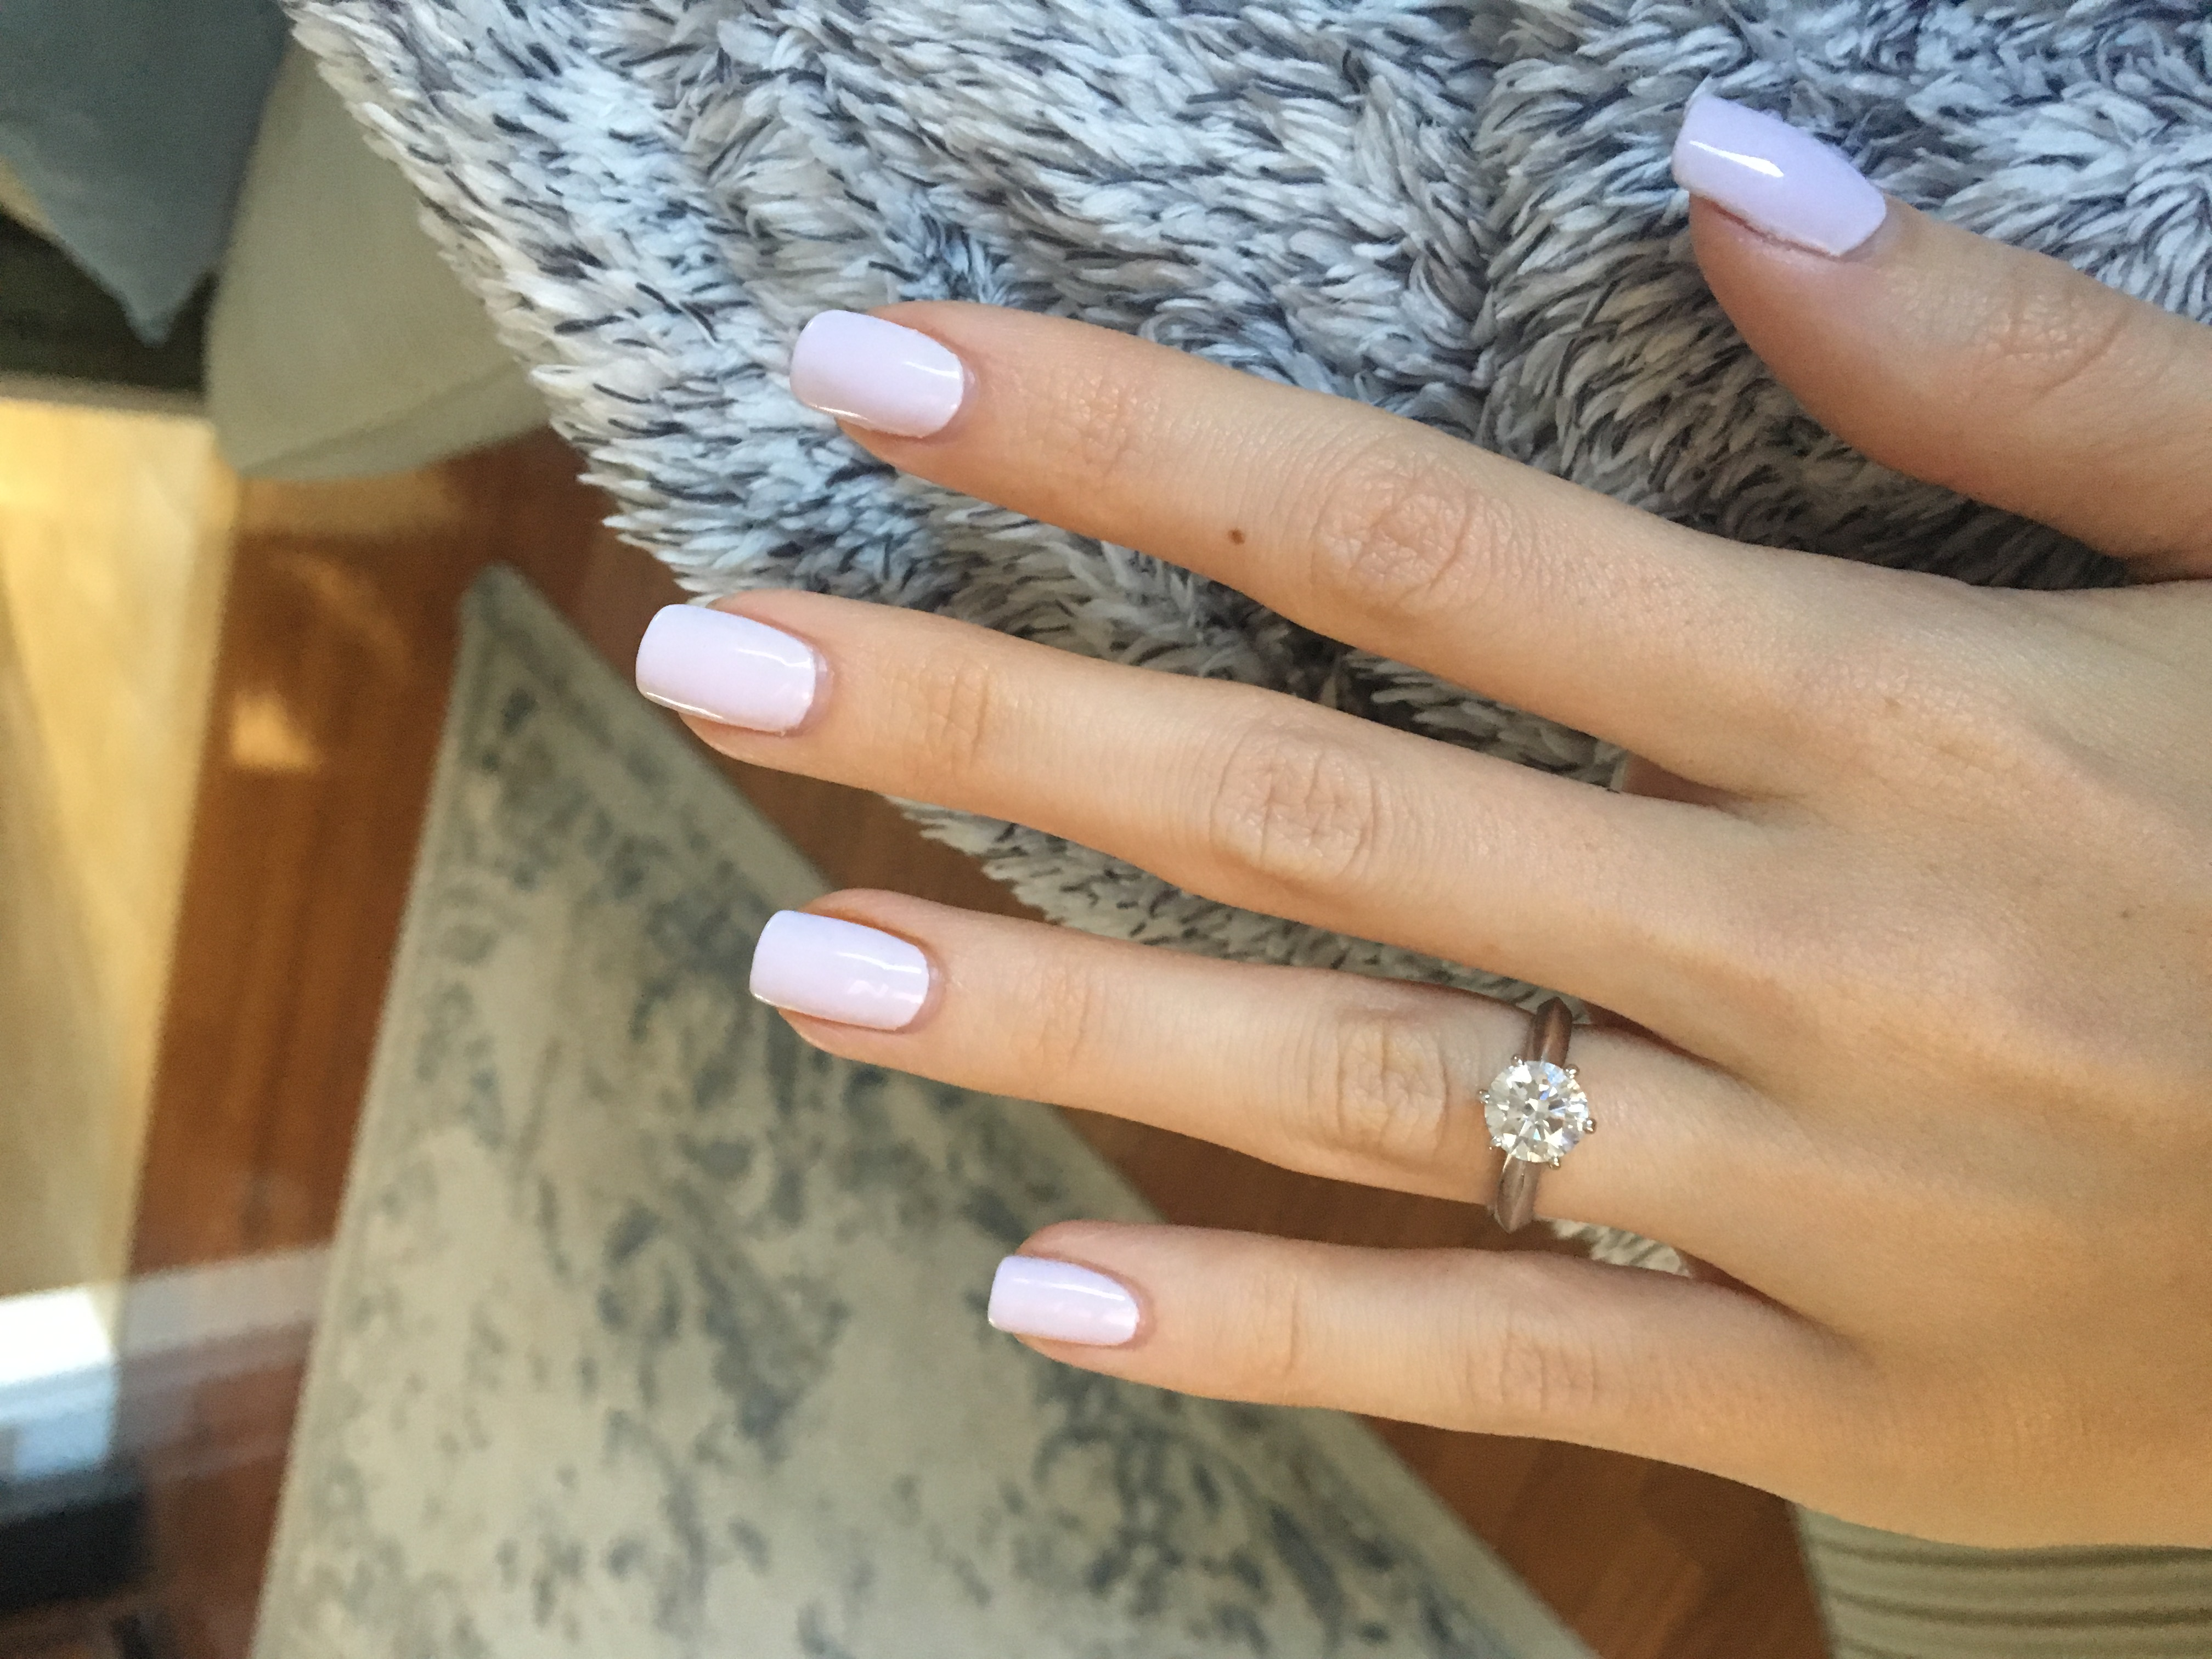 Nail Polish You Can Use While Pregnant 8 Months Hession